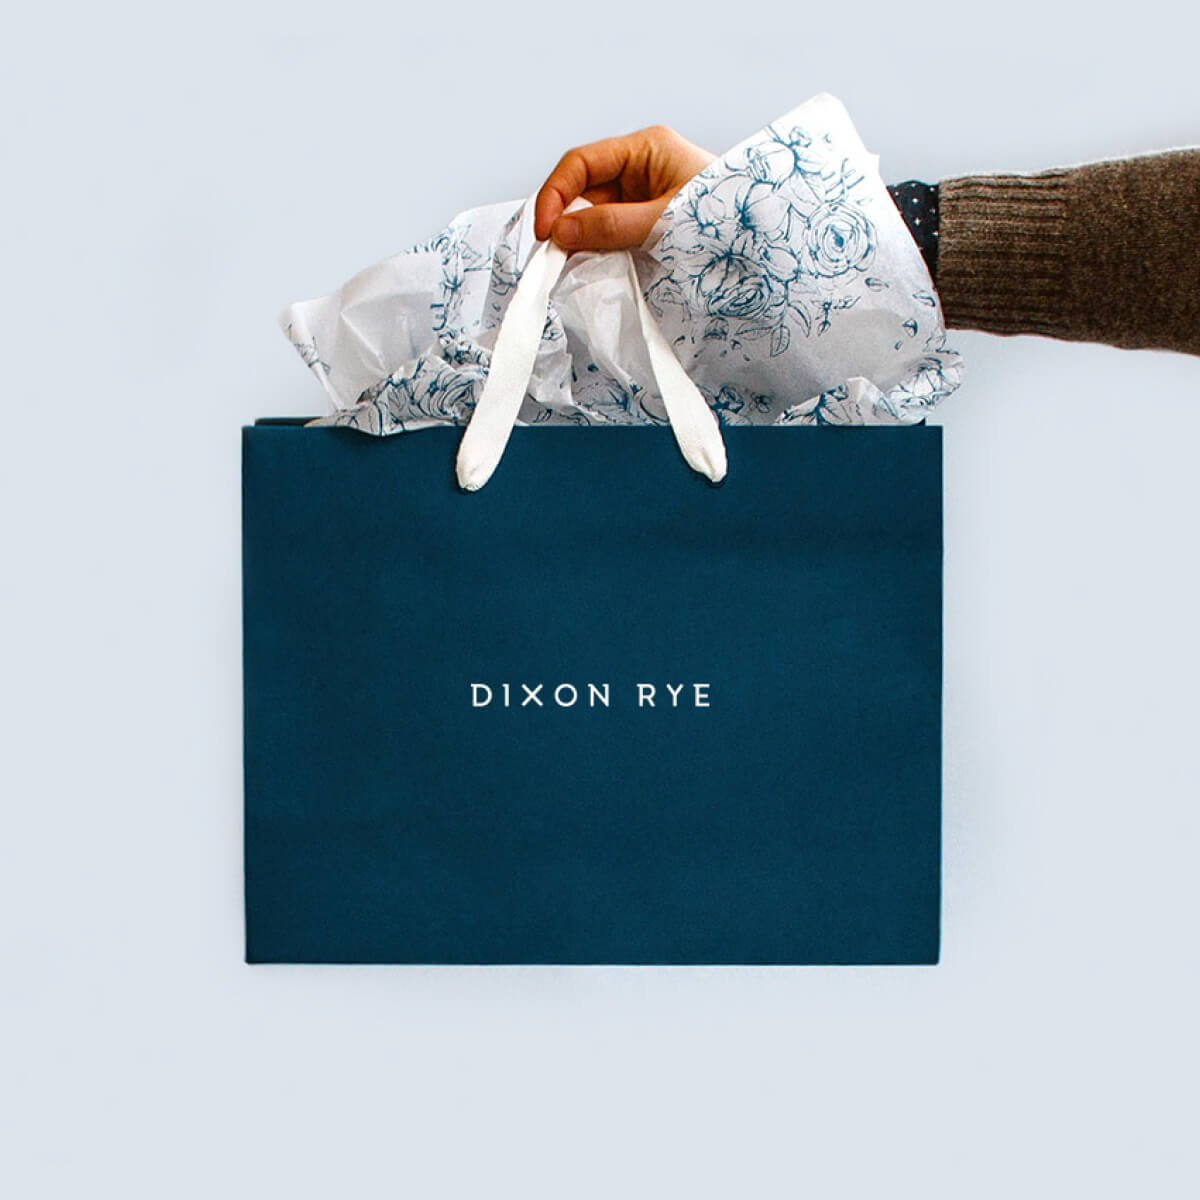 Dixon Rye - A sophisticated interior design studio and retail brand providing an intentional assortment of heritage-quality home goods – a place to buy better, fewer things.Branding, Design